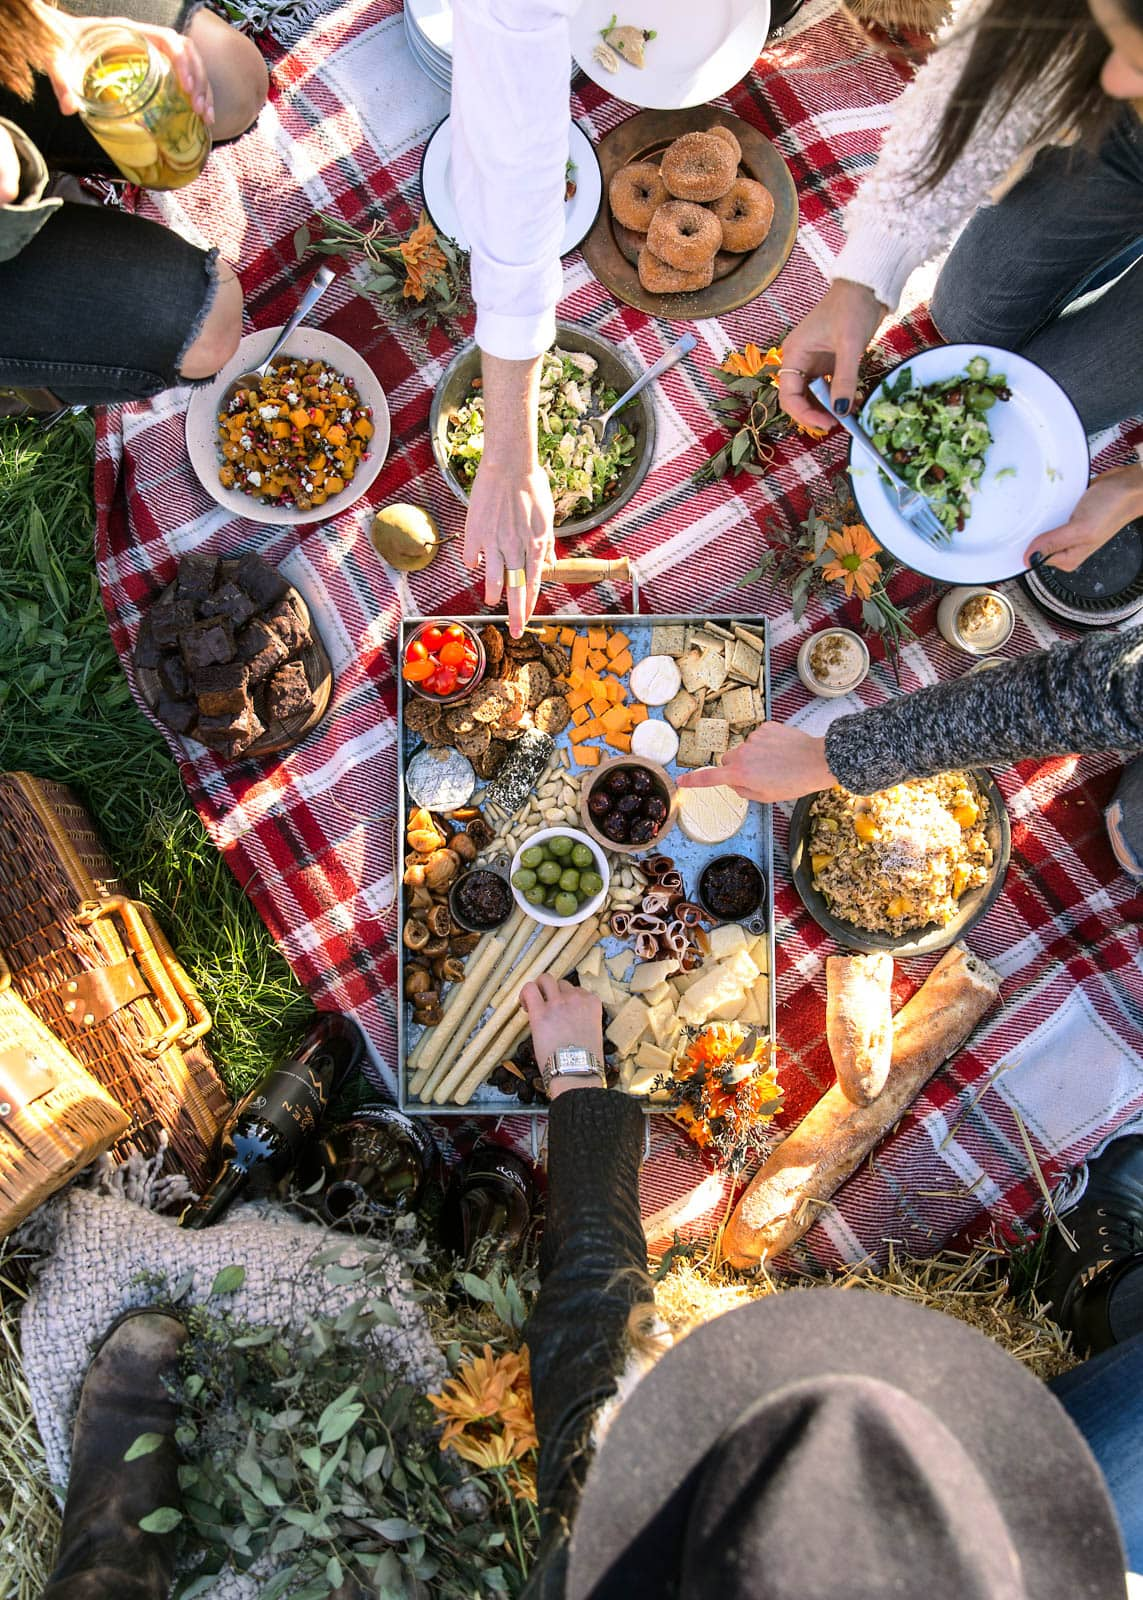 5 tips for hosting a Friendsgiving (with recipes!)